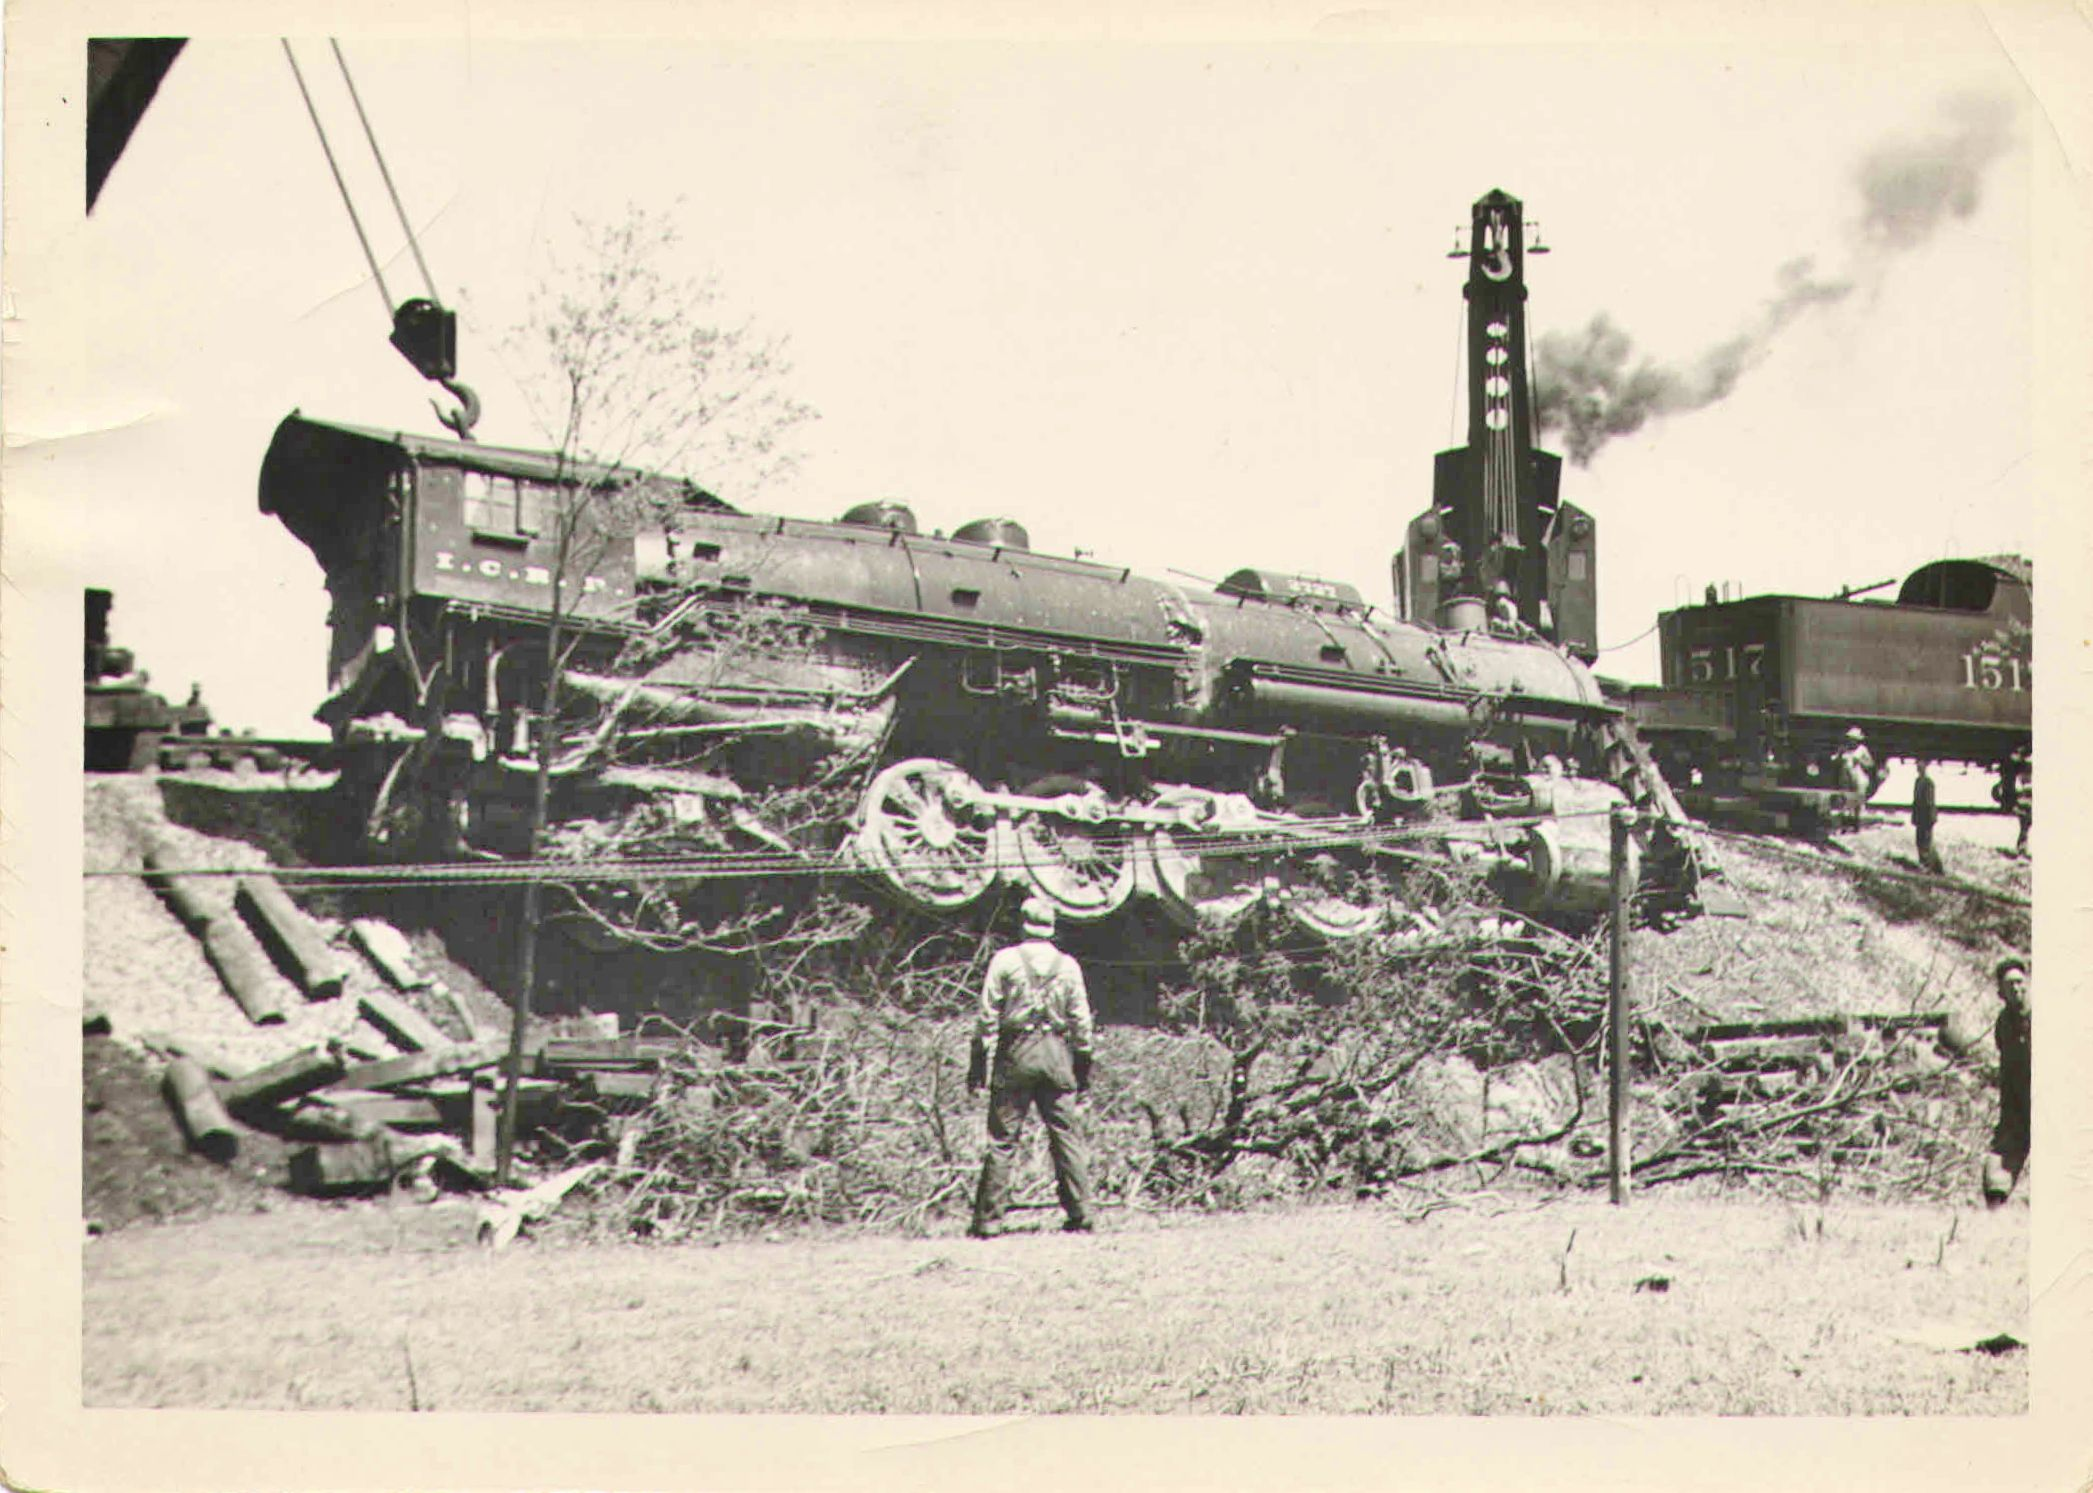 Illinois Central RR wreck of #2727 in Leitchfield, KY 04/26/49